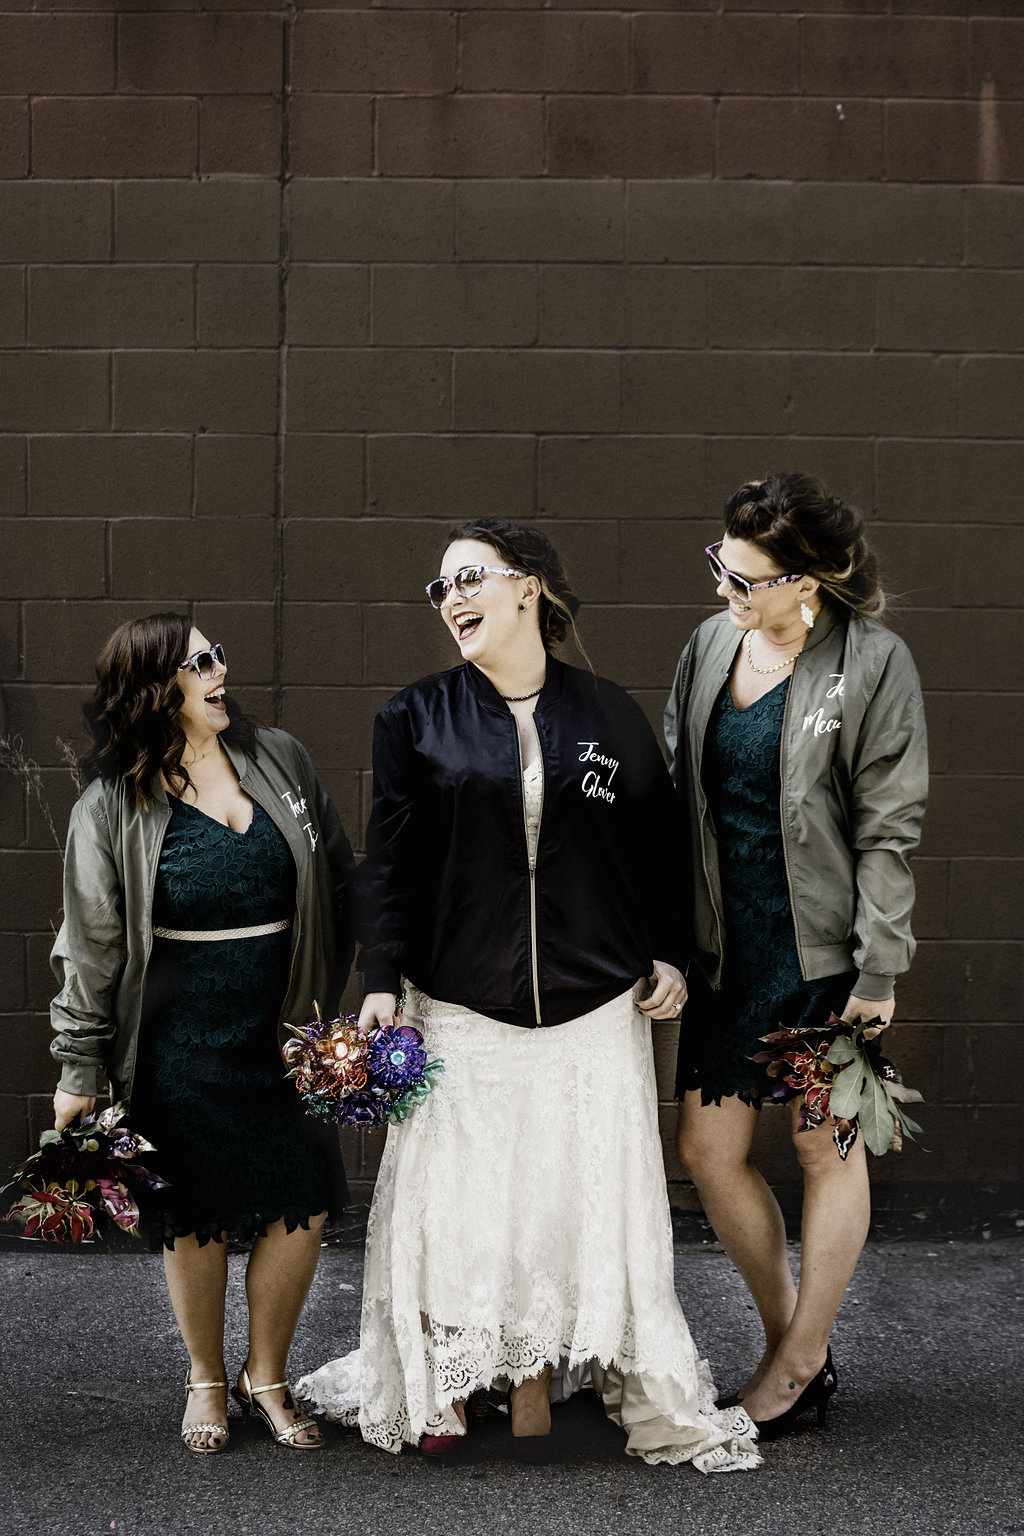 Personalized jackets for bridesmaids, Pittsburgh wedding